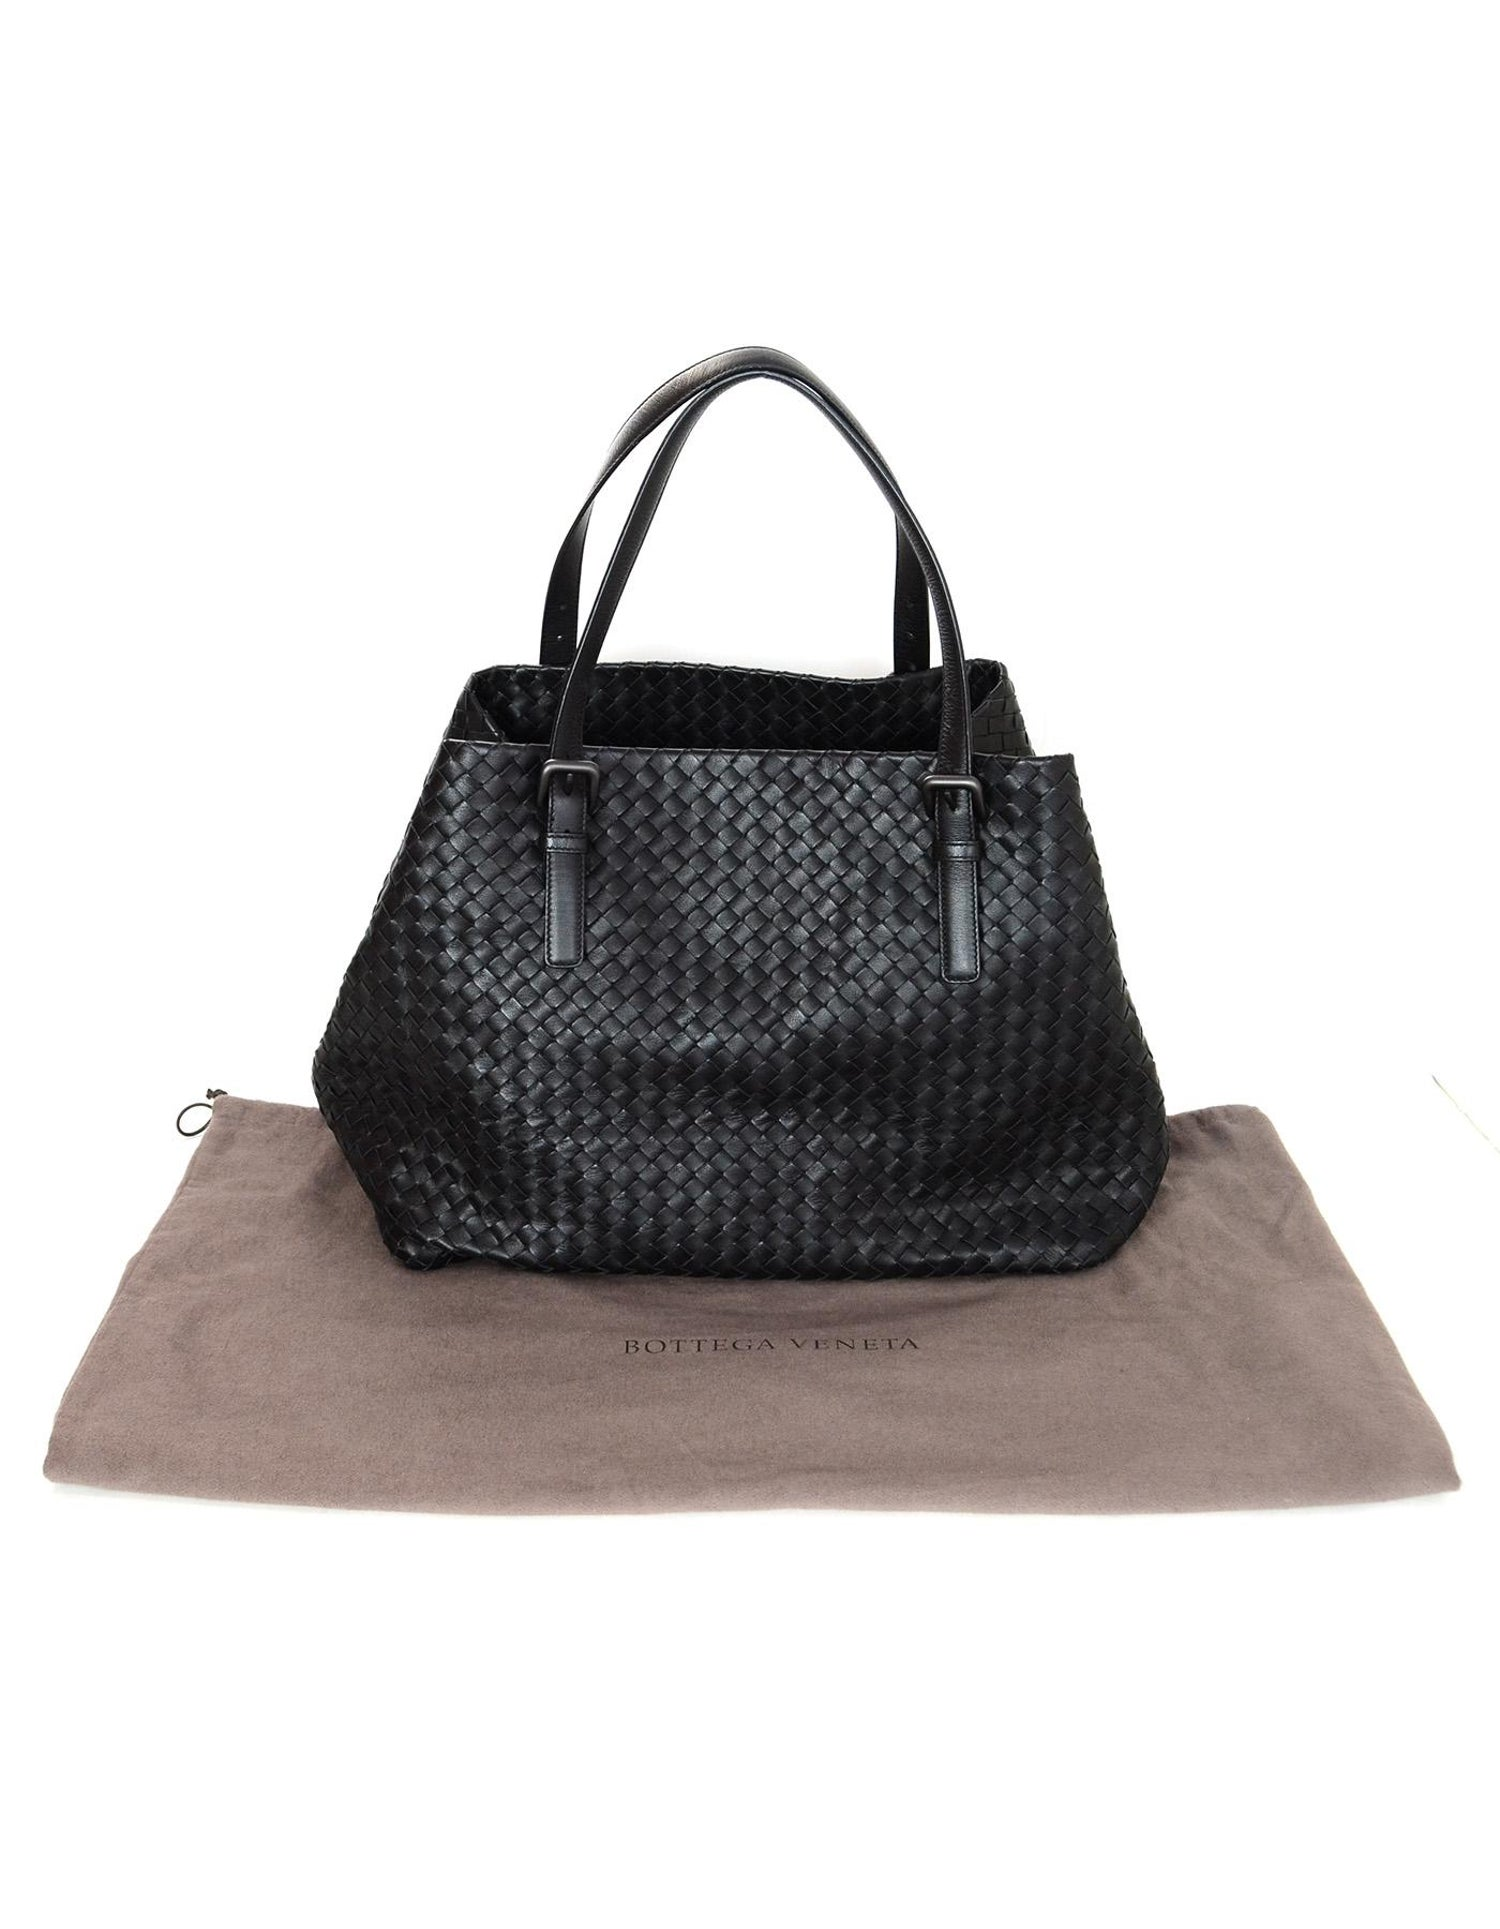 a09866b5dfad Bottega Veneta Black Woven Intrecciato Leather Large Cesta Tote Bag For  Sale at 1stdibs